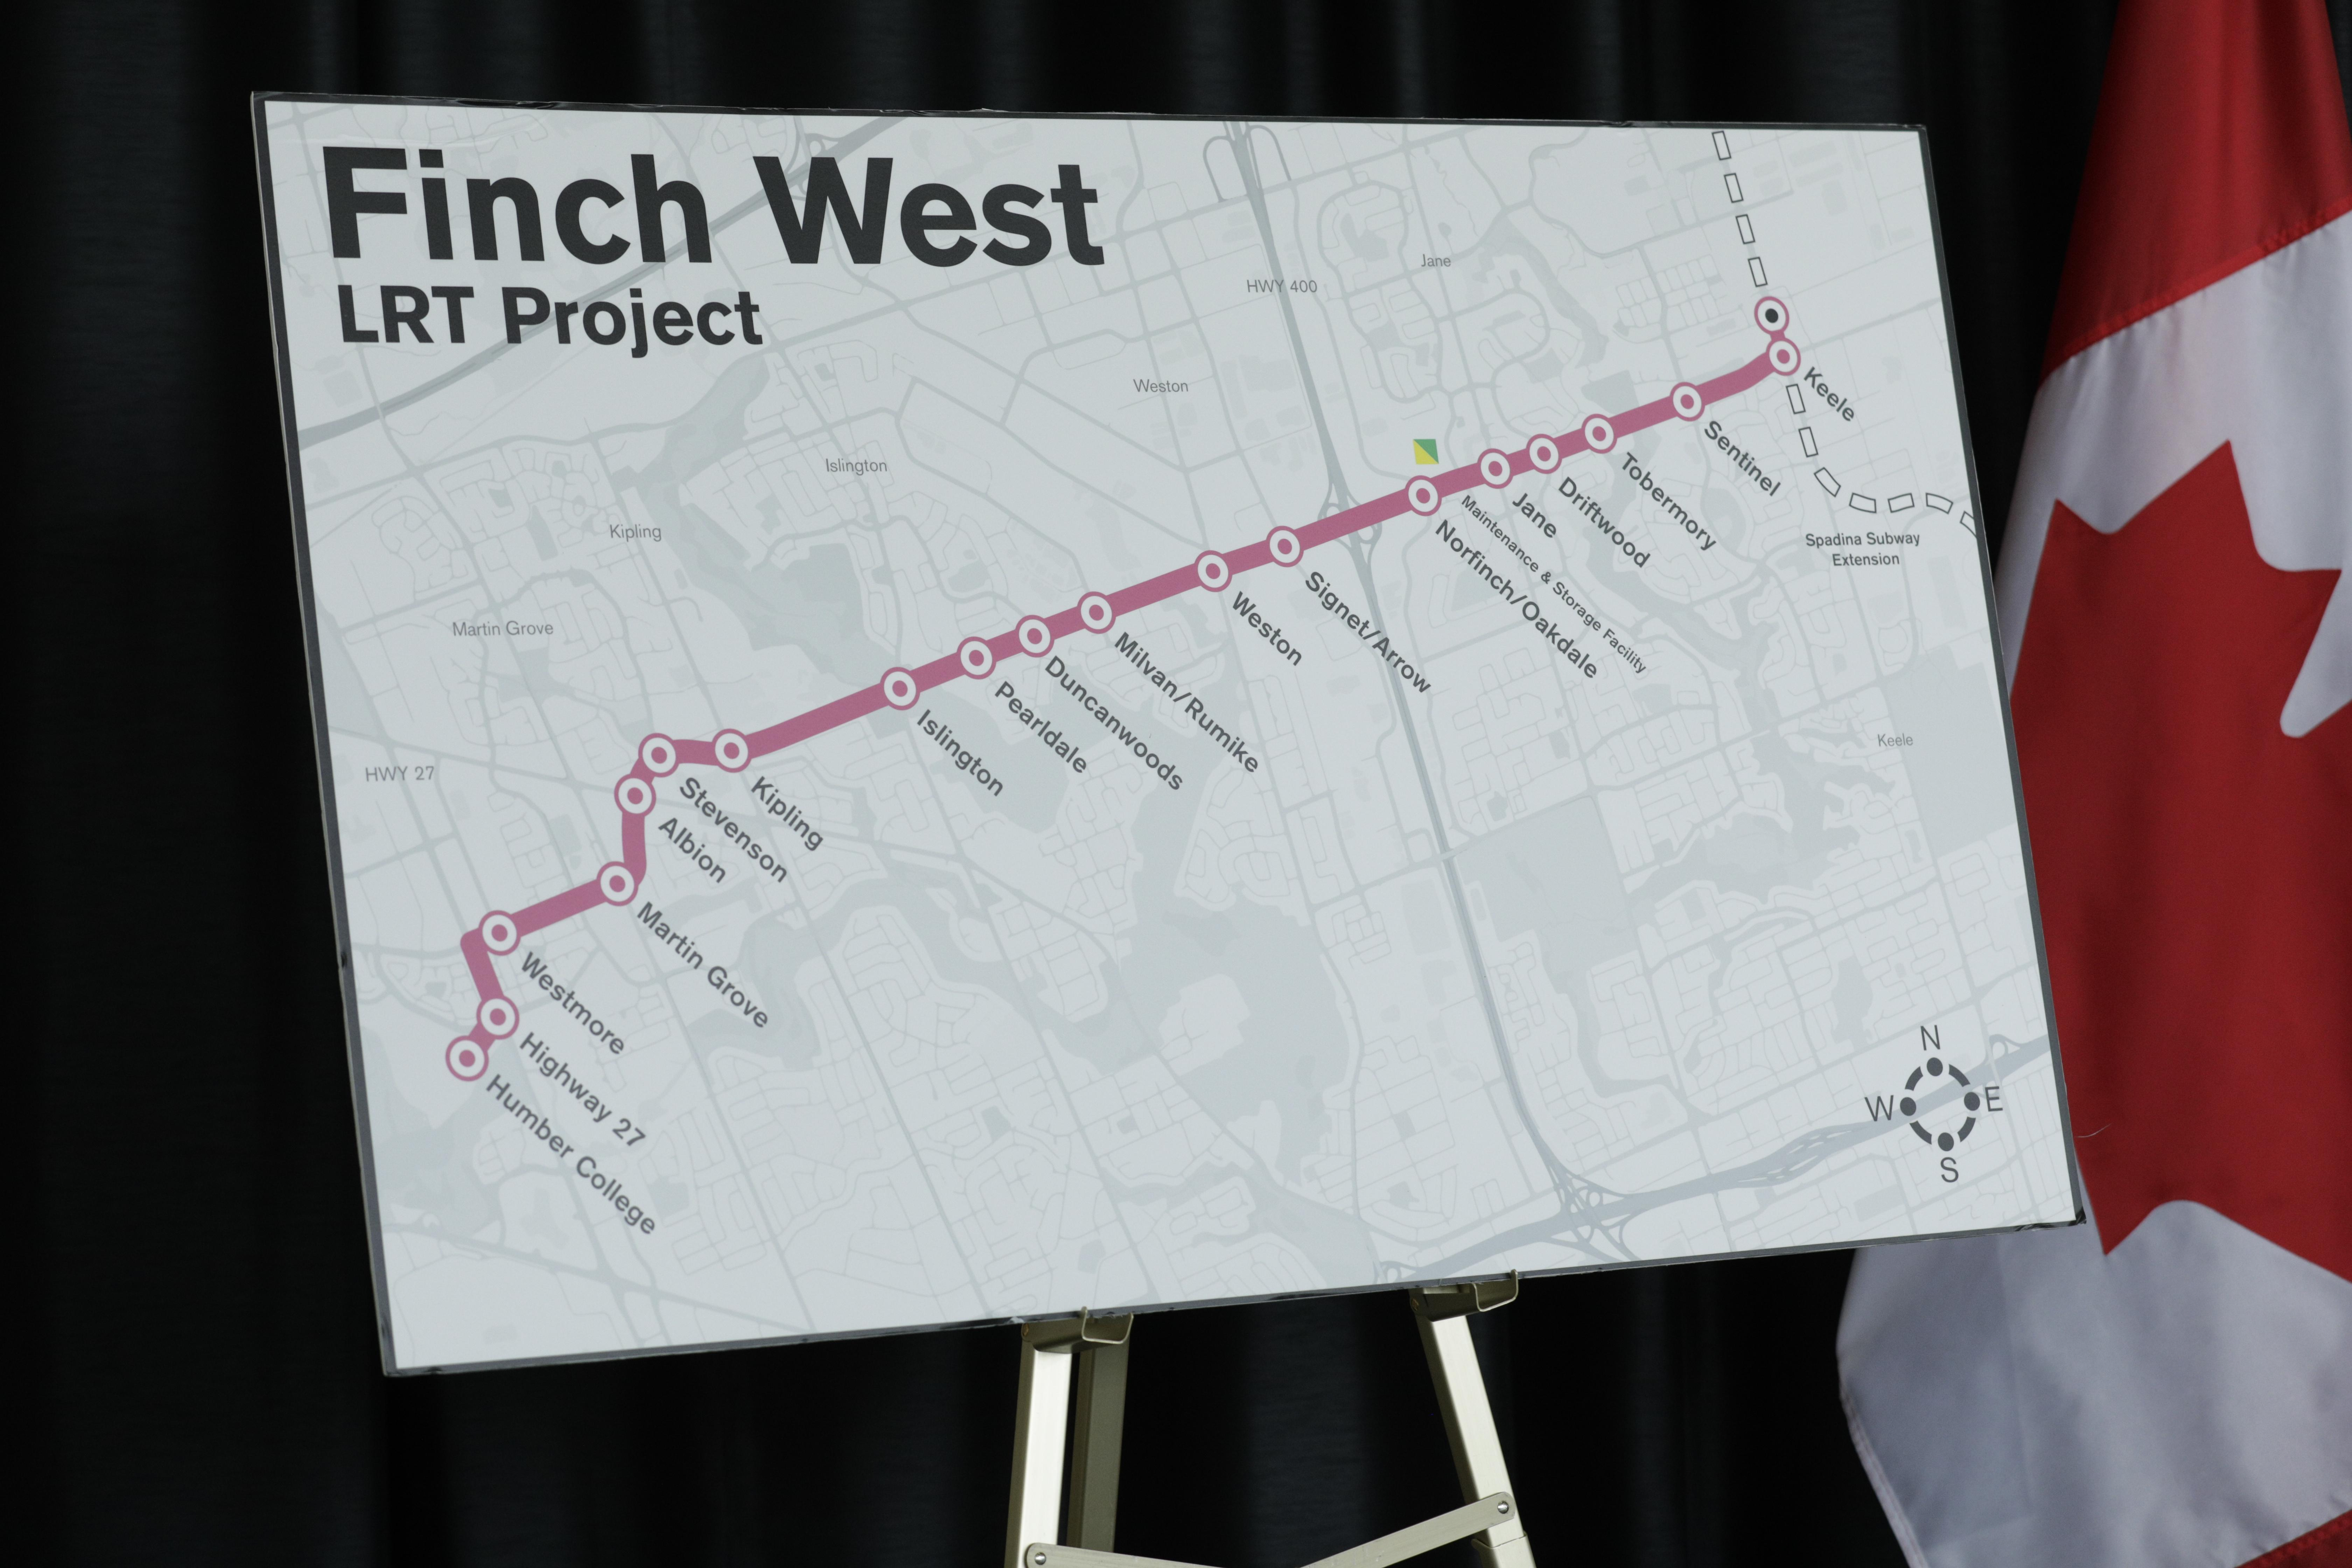 The future Finch LRT line